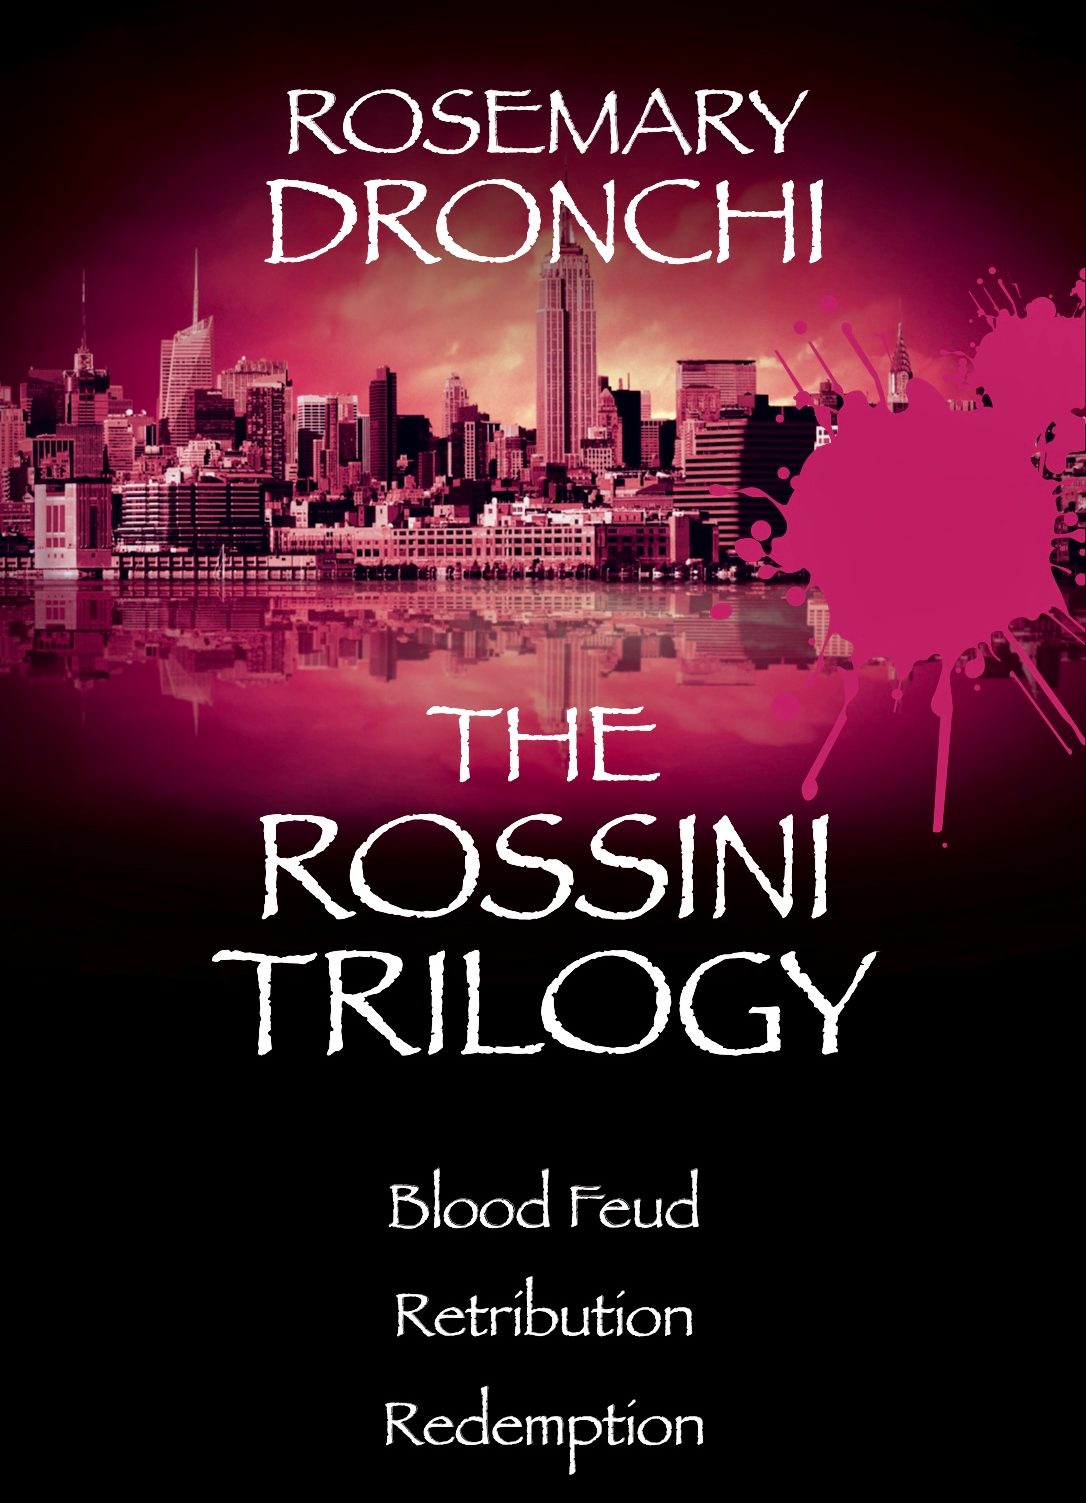 The Rossini Trilogy